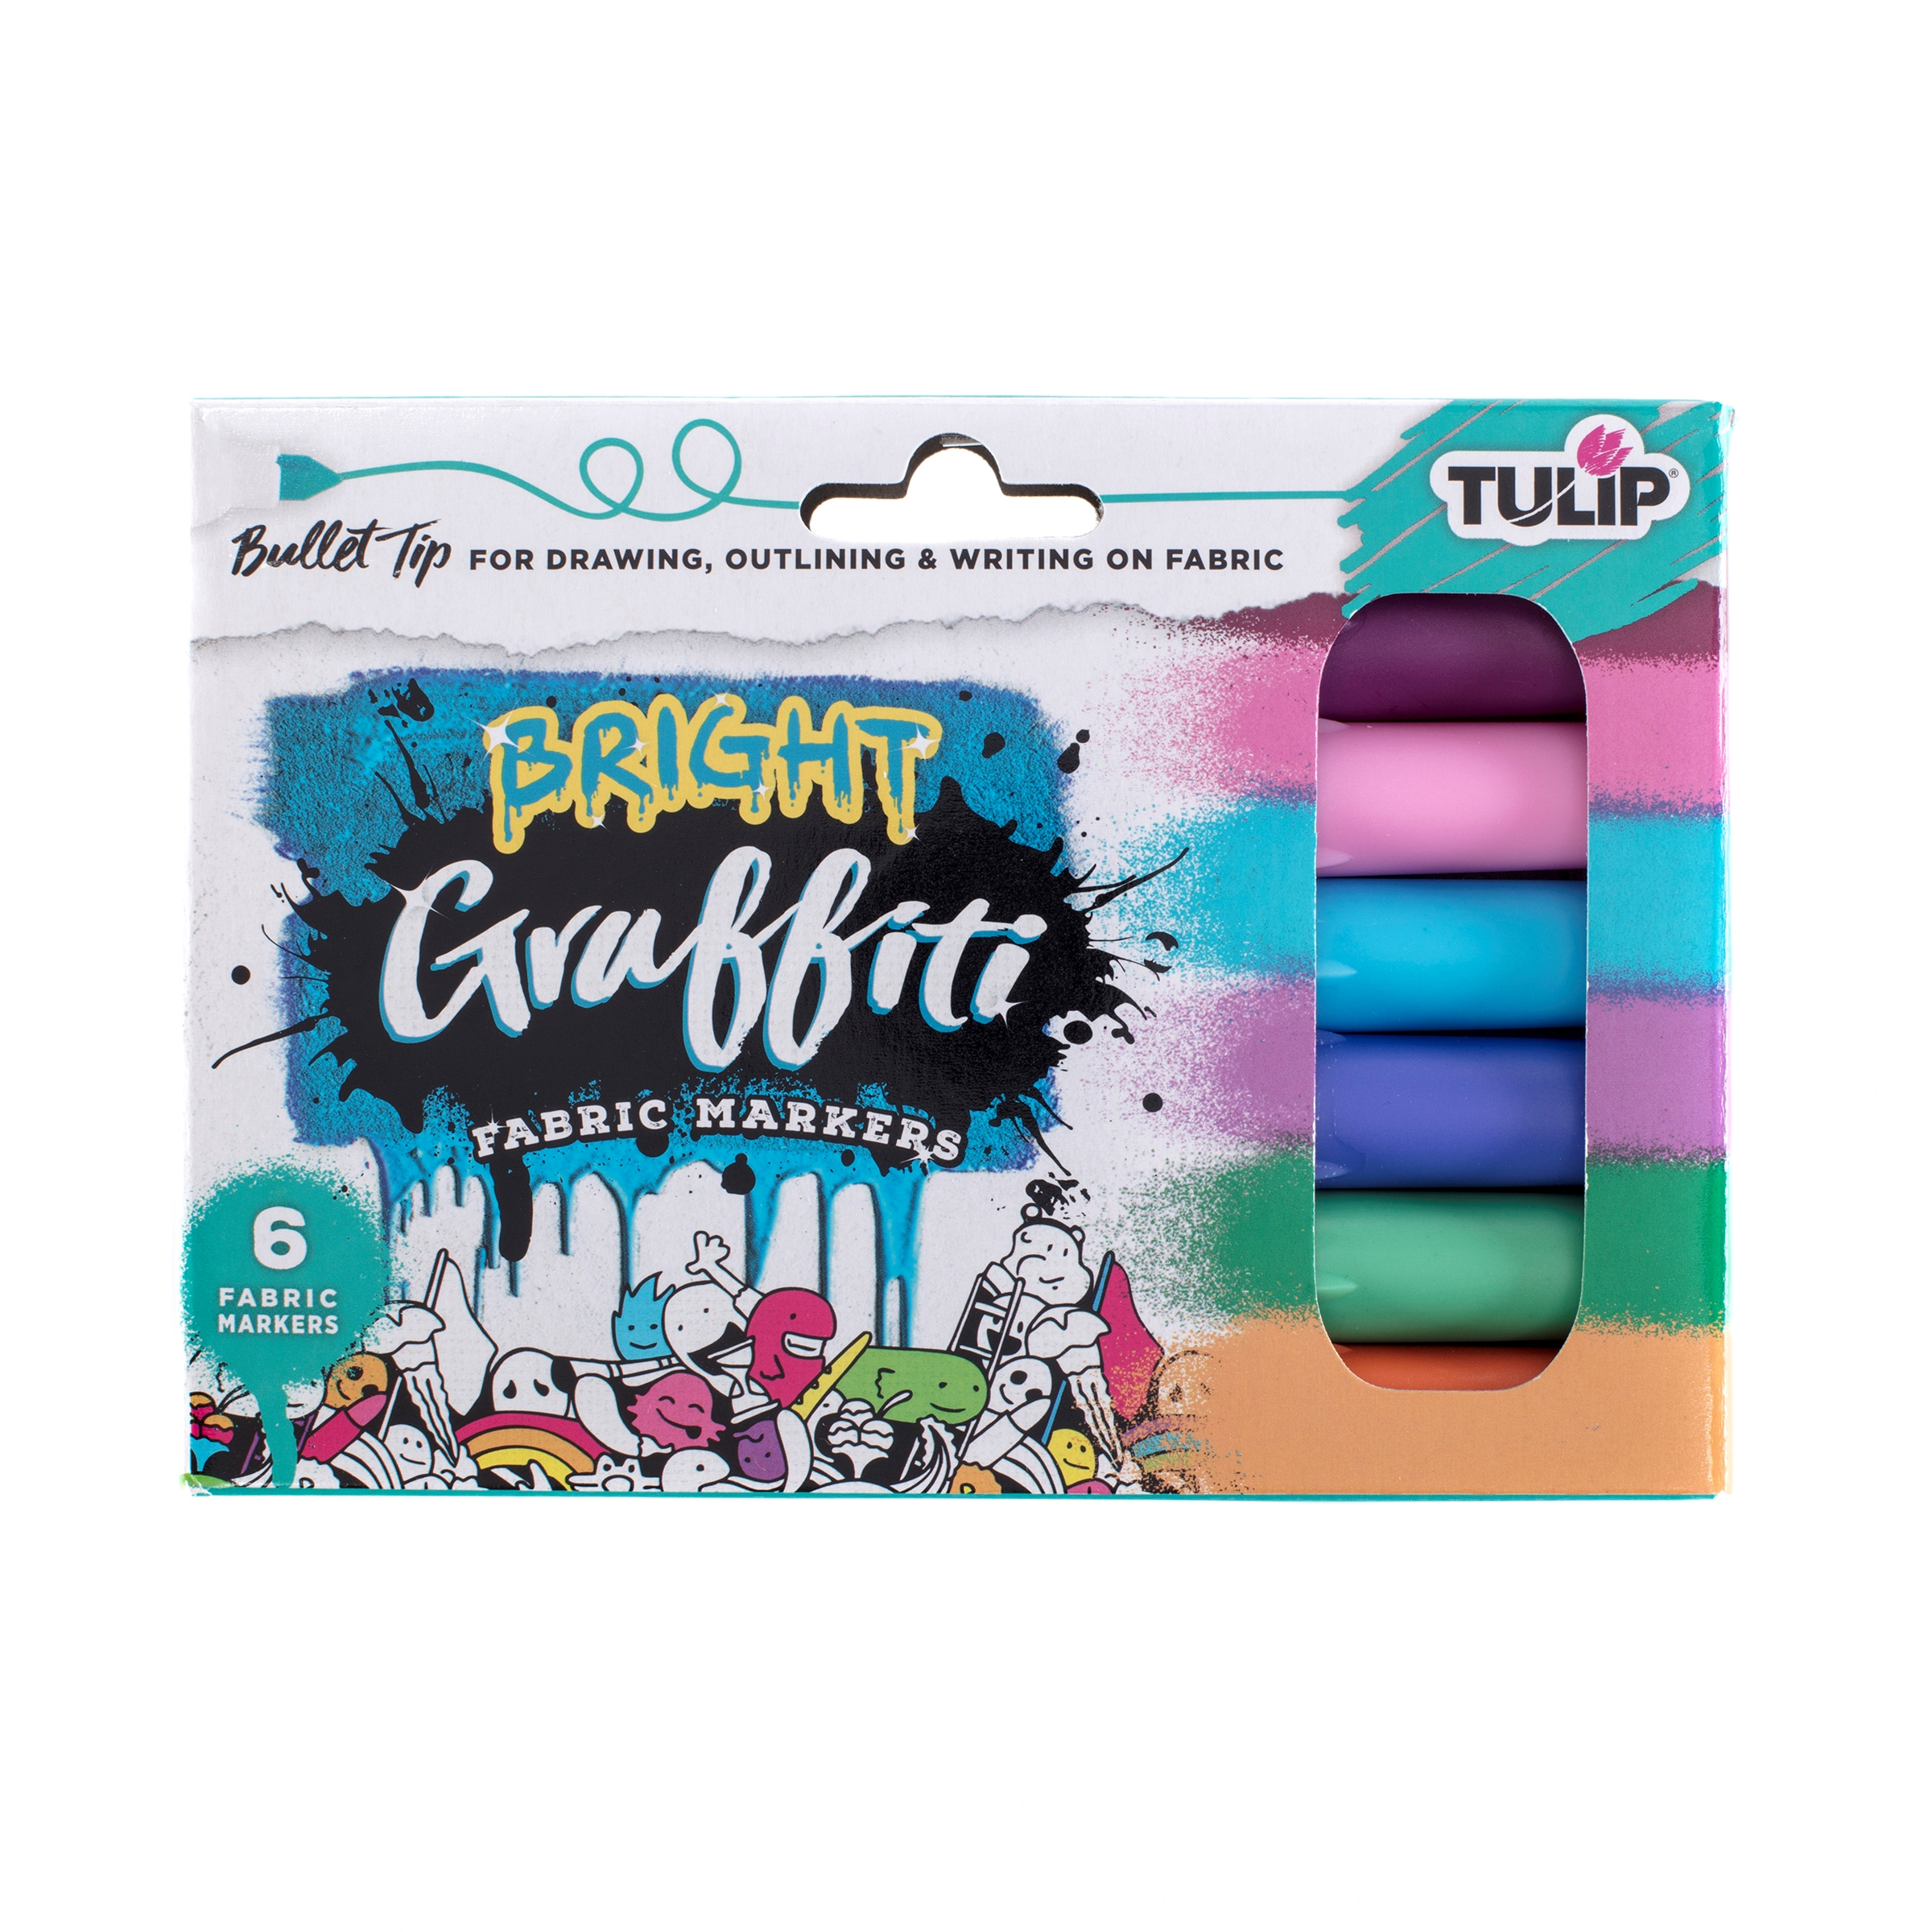 Picture of Graffiti Bullet Tip Bright Fabric Markers 6 Pack